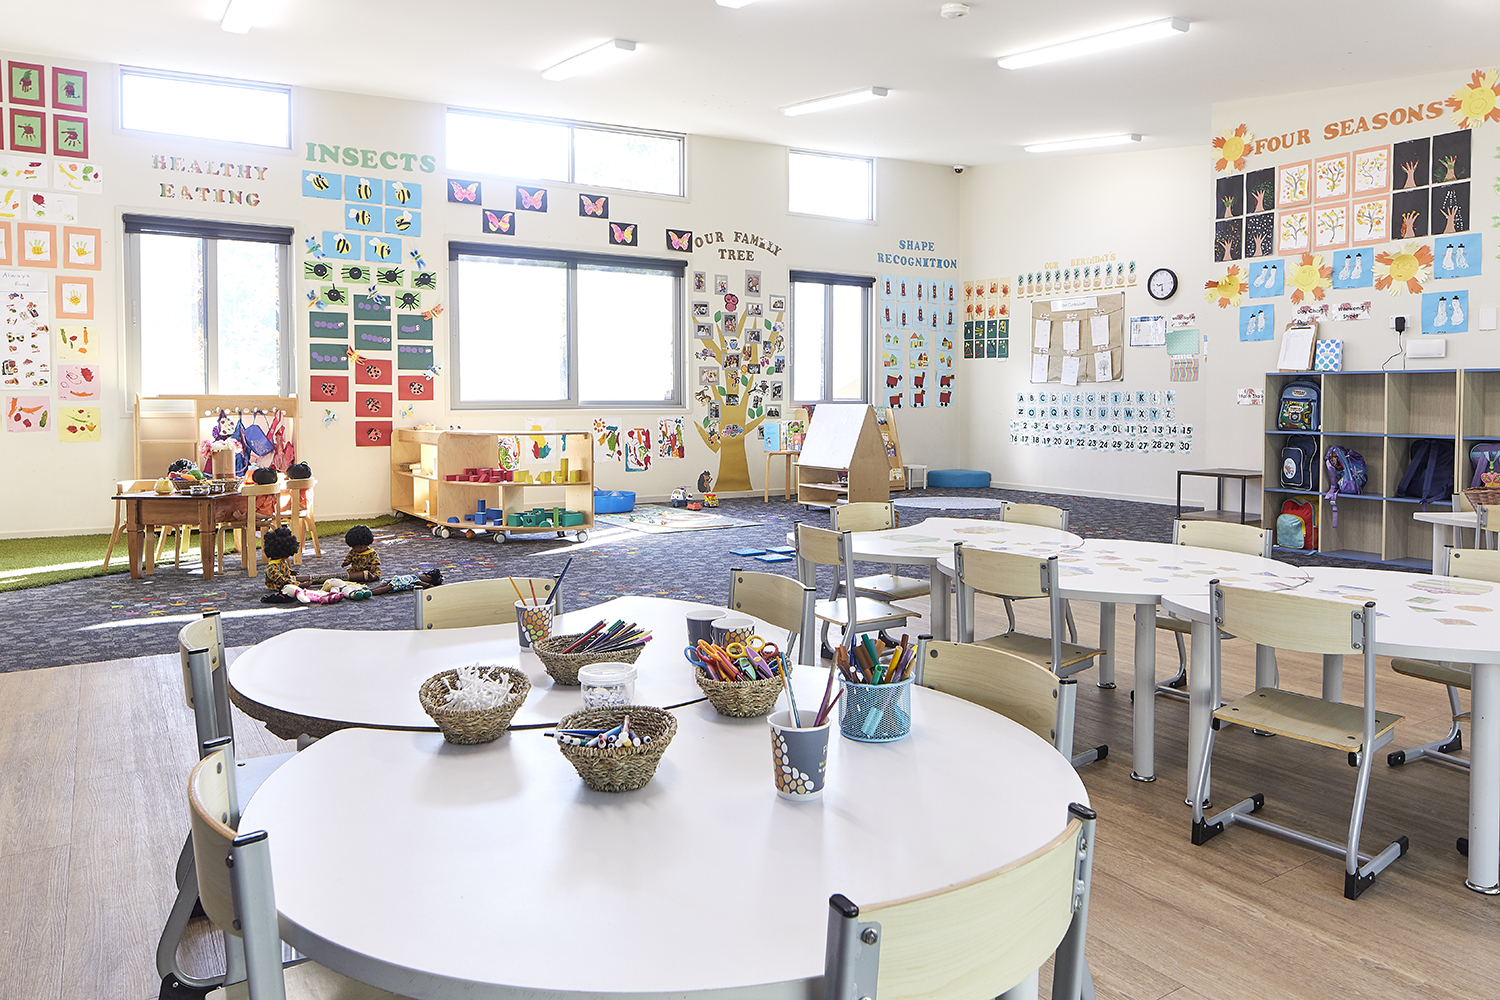 Preschool child care classroom at Papilio Belrose